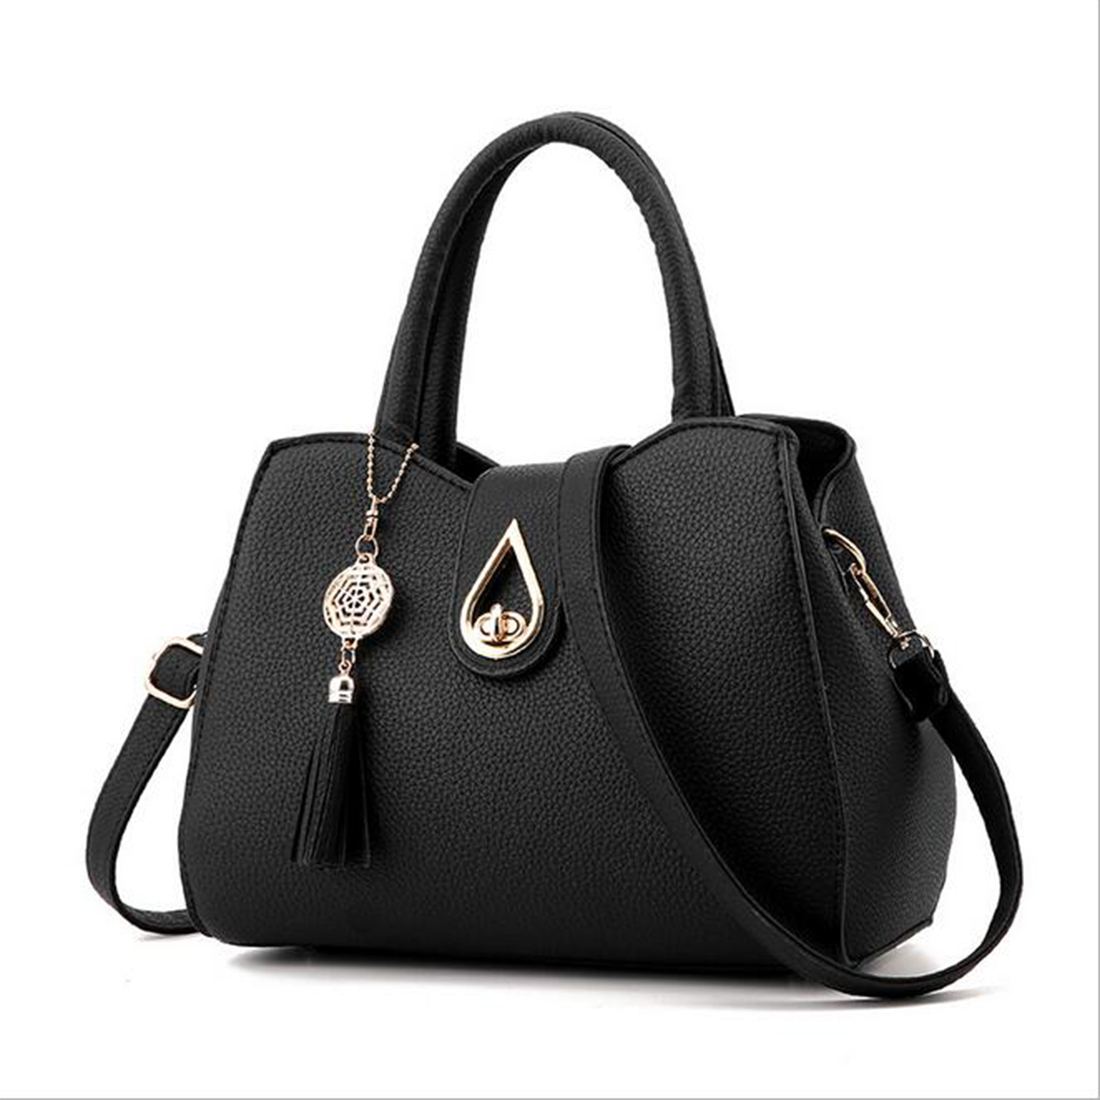 2017 Spring Summer women hand bag women leather handbags black Fashion shoulder bag messenger bag bolsas wholesale